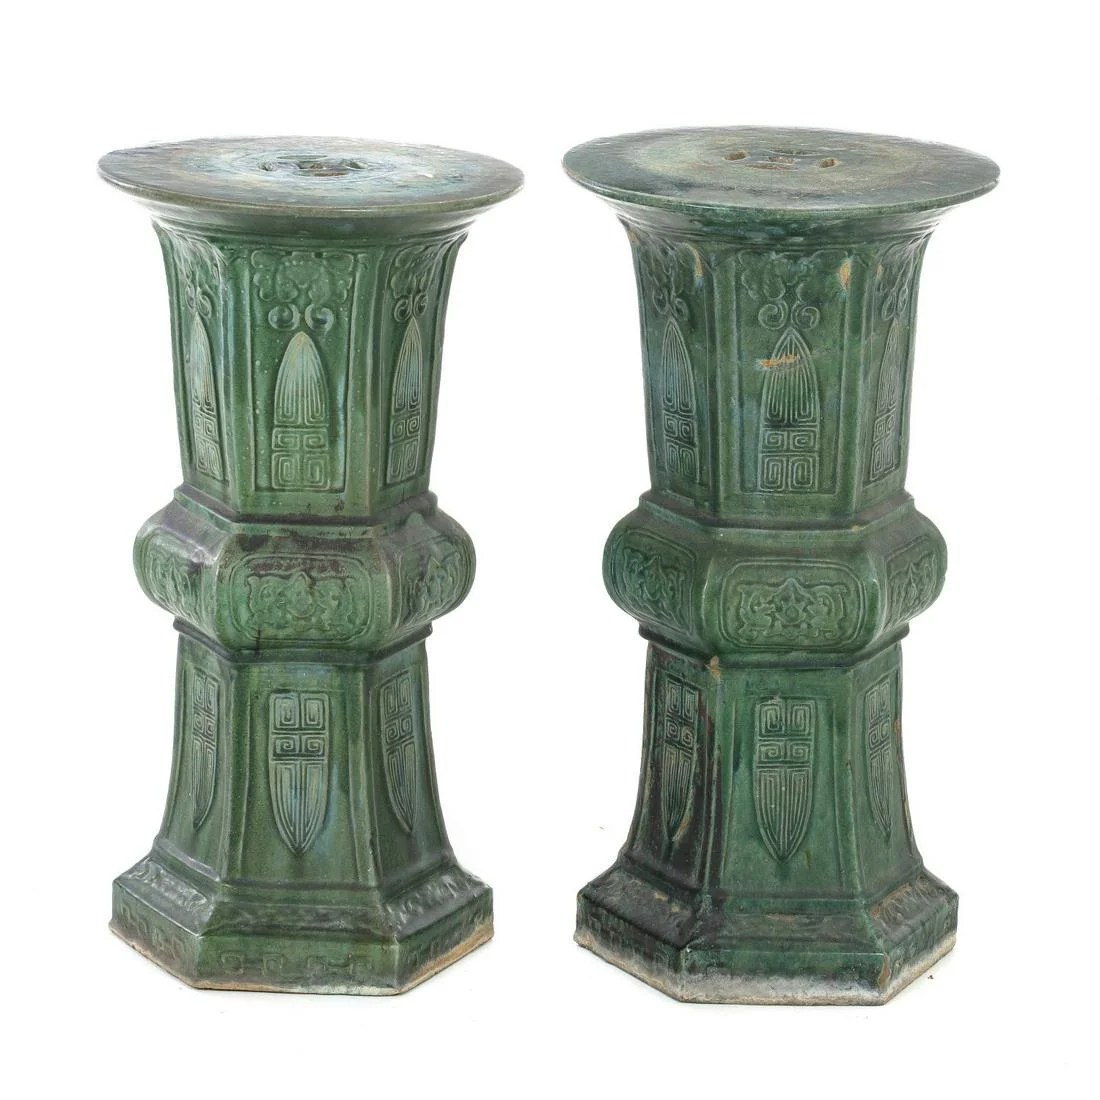 Pair of Chinese celadon ceramic Stools, Plant Stand